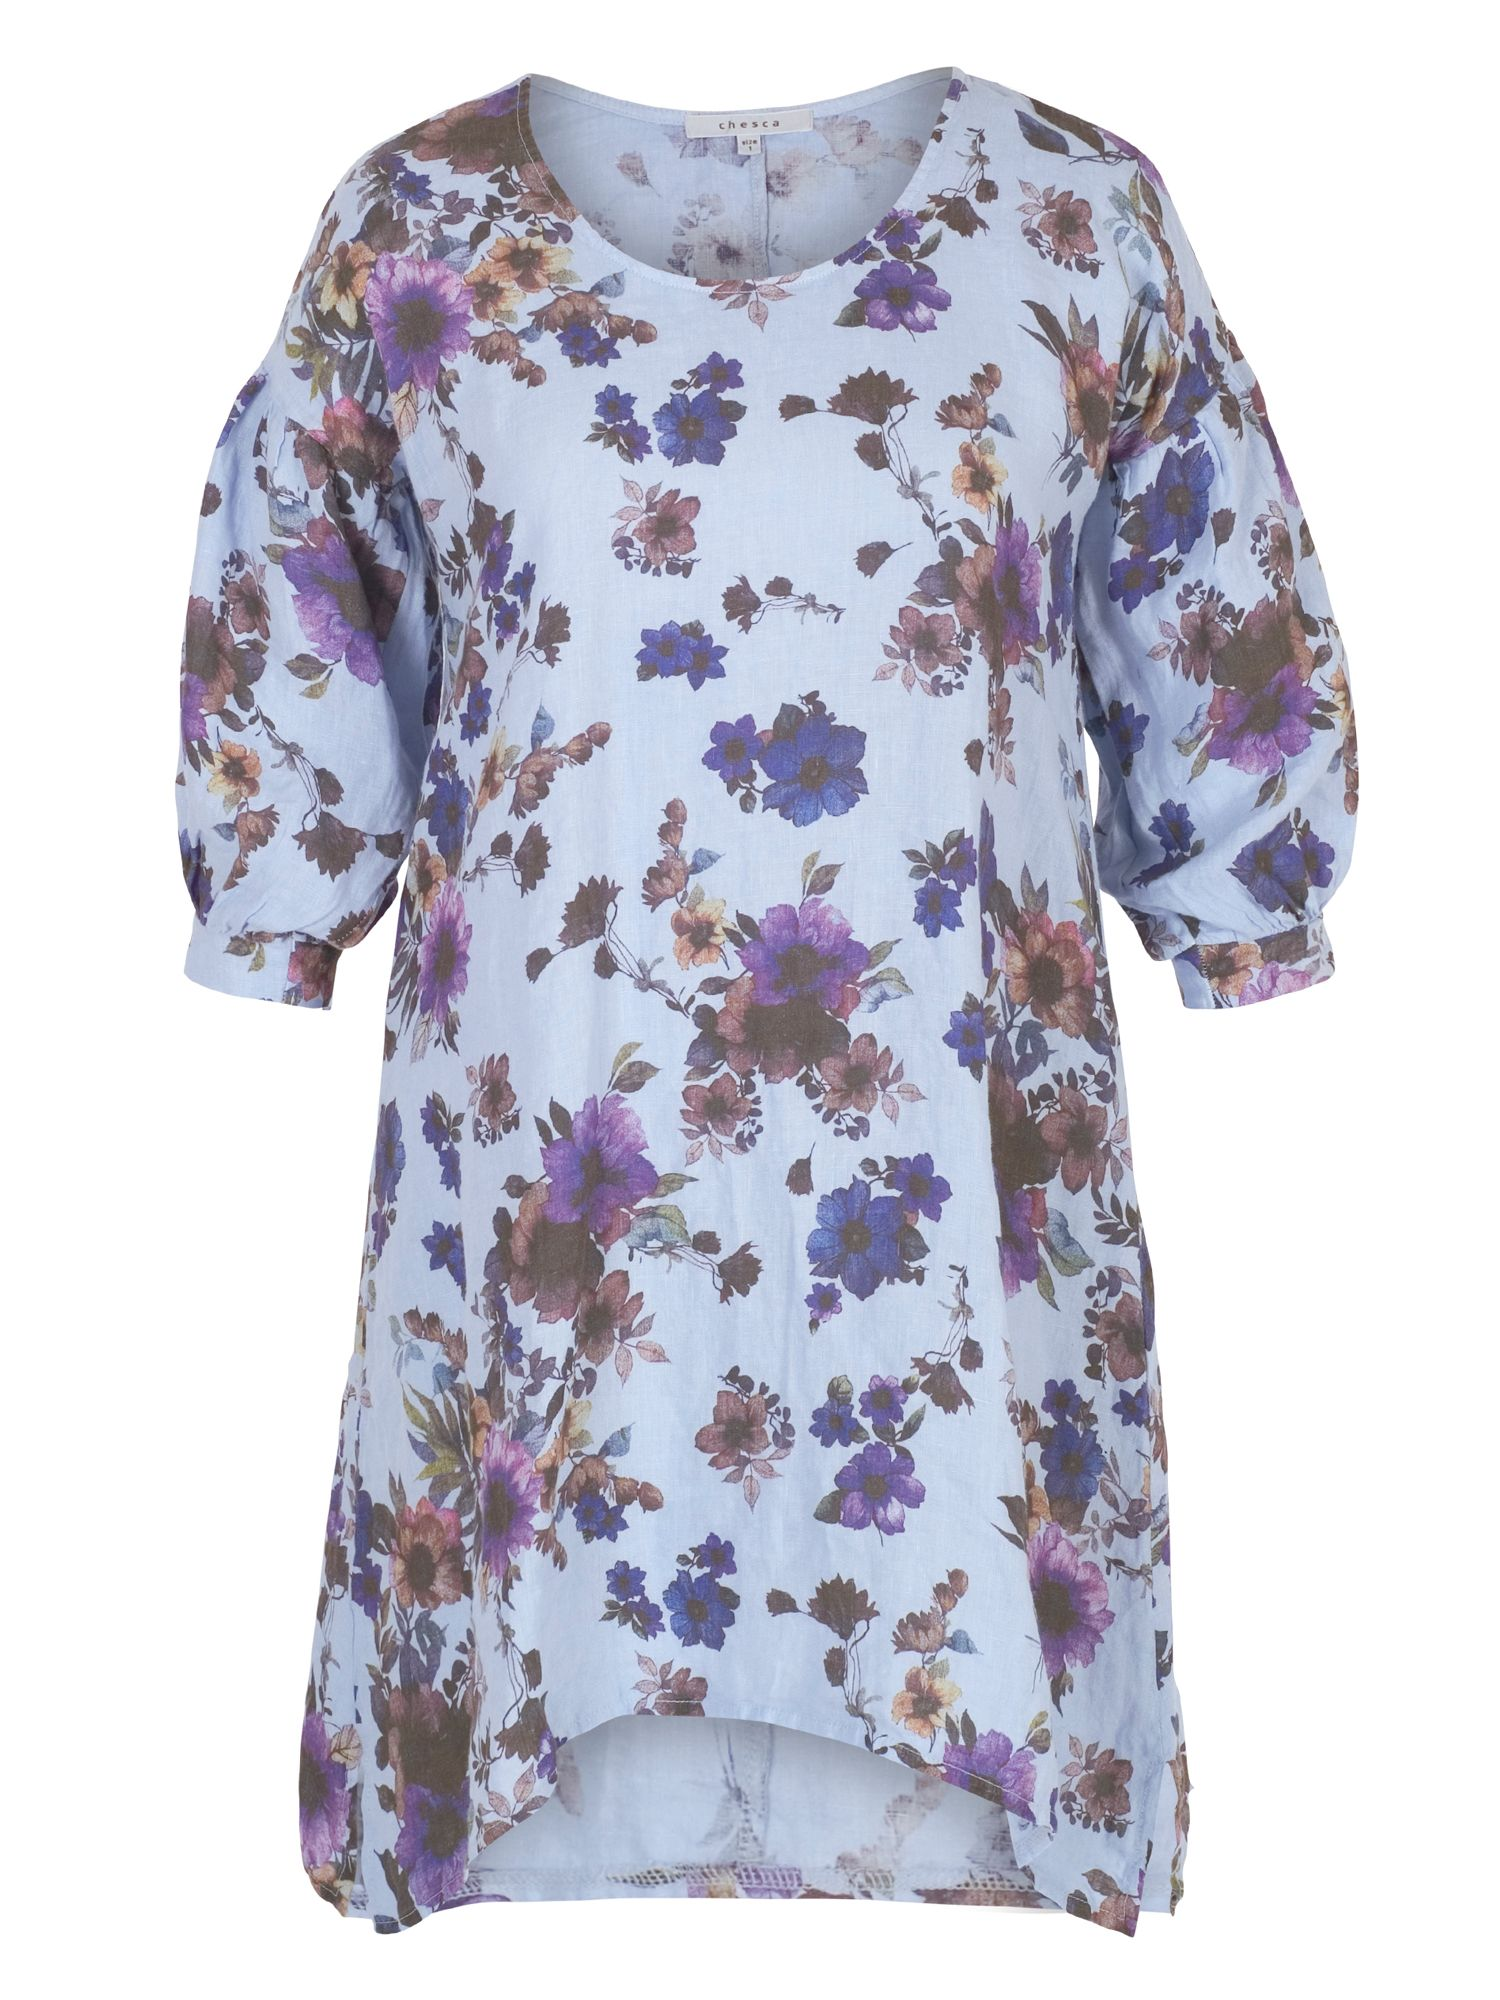 Chesca Floral Print Puff Sleeve Linen Tunic, Blue Multi